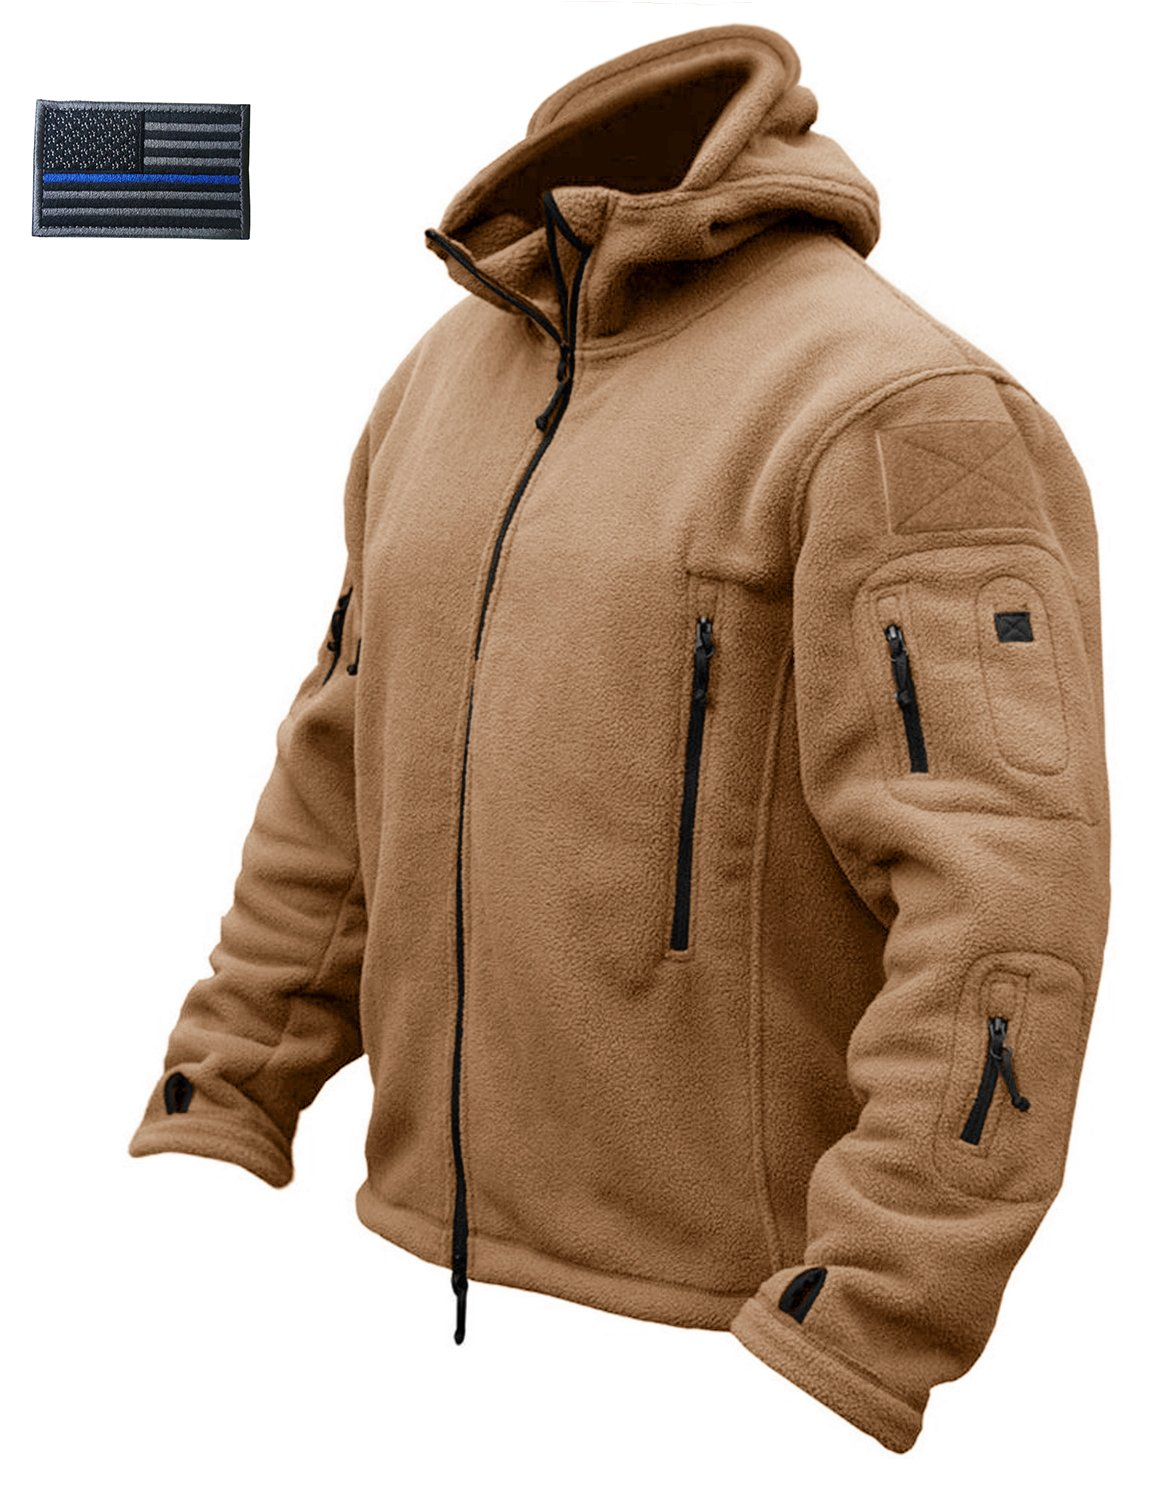 CRYSULLY Men Winter Cotton Casual Fishing Hoodie